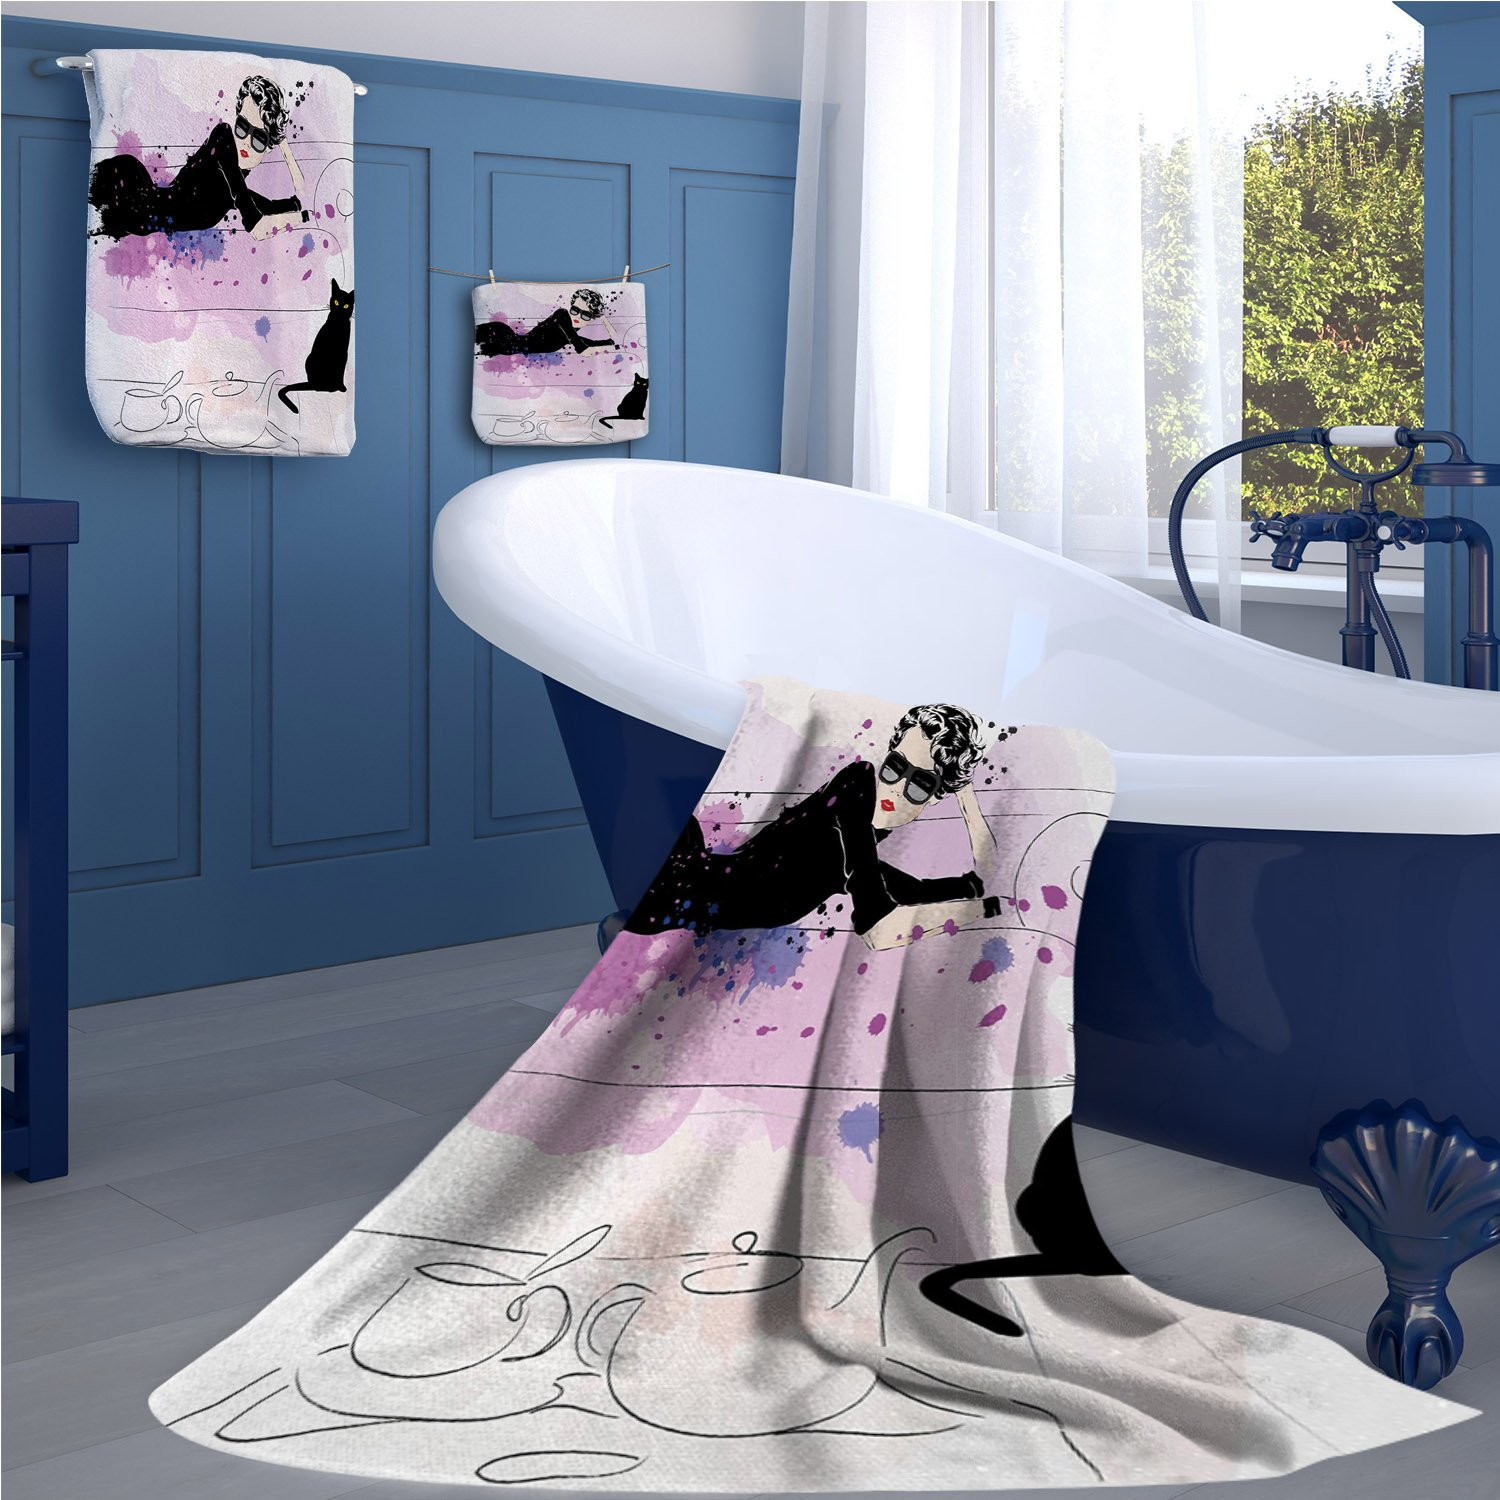 warmfamily Kitten Print towel set Girl with Sunglasses Lying on Couch Cat in Home Theme with Stains Animals cheap hand towels Black Lilac Lavender